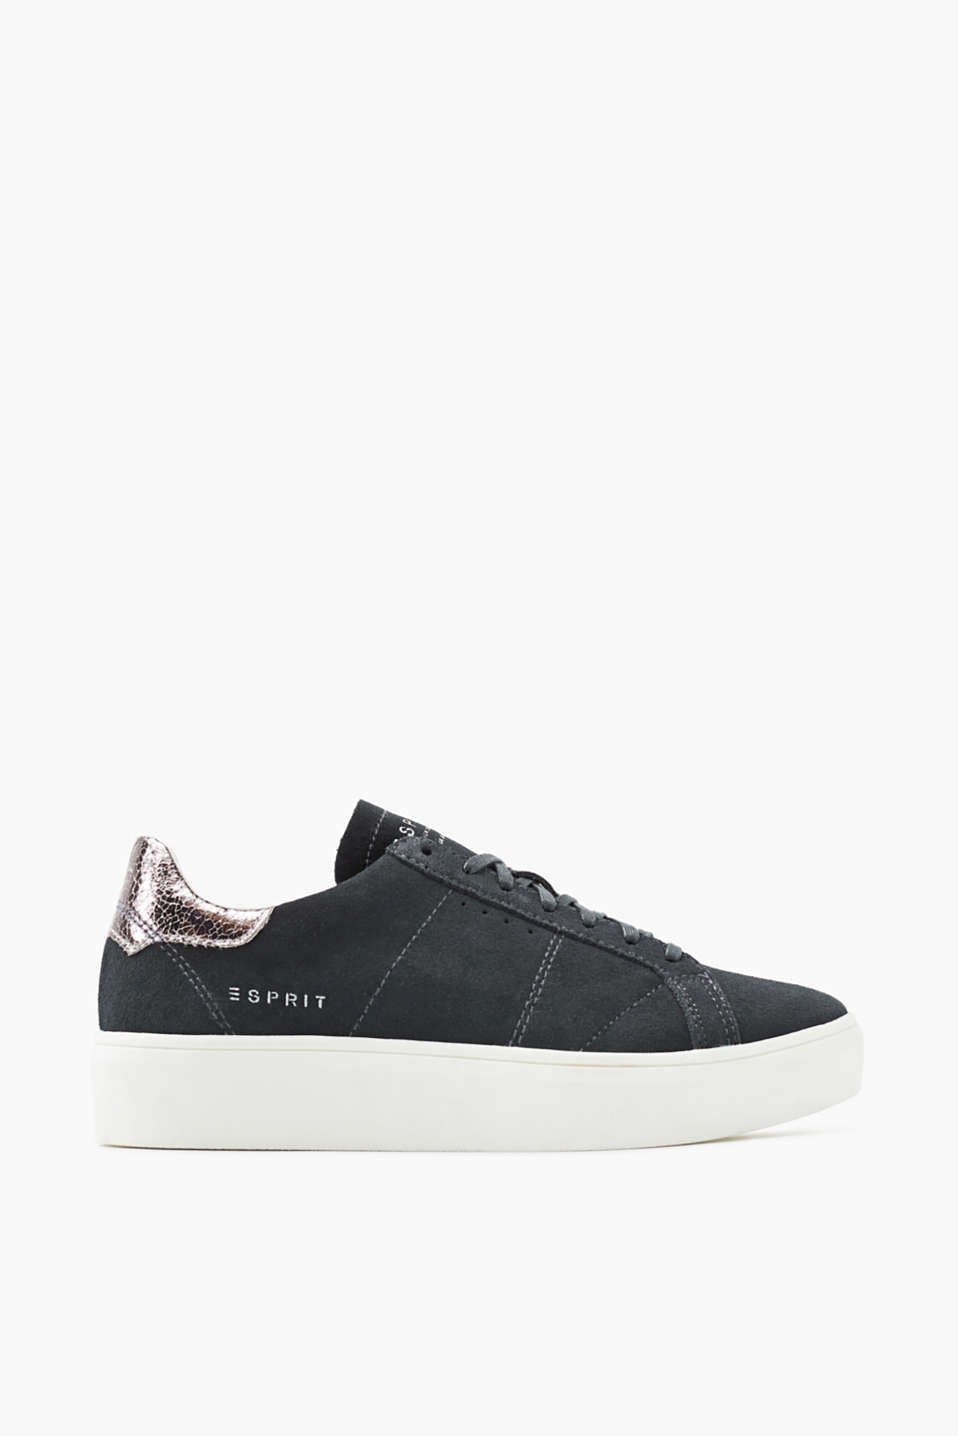 Cowhide trainers with a metallic heel trim and a distinctive rubber sole